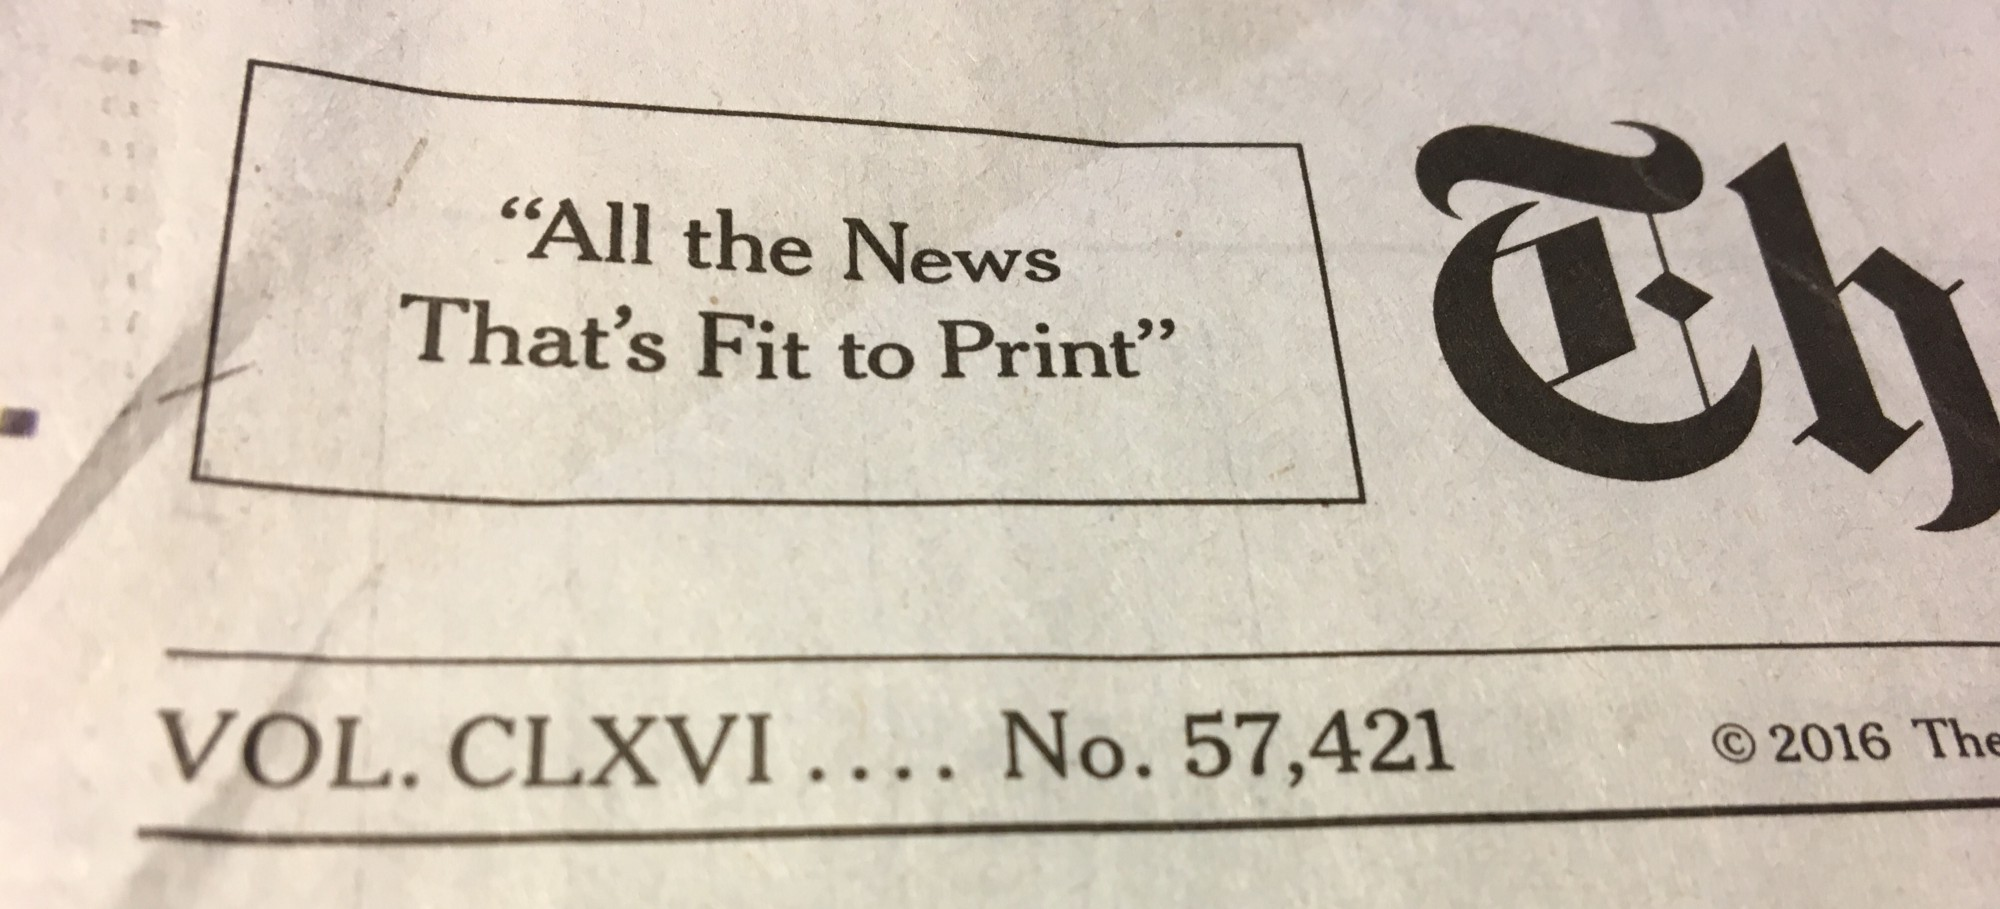 How we read The New York Times (or any other paper) in the age of social media